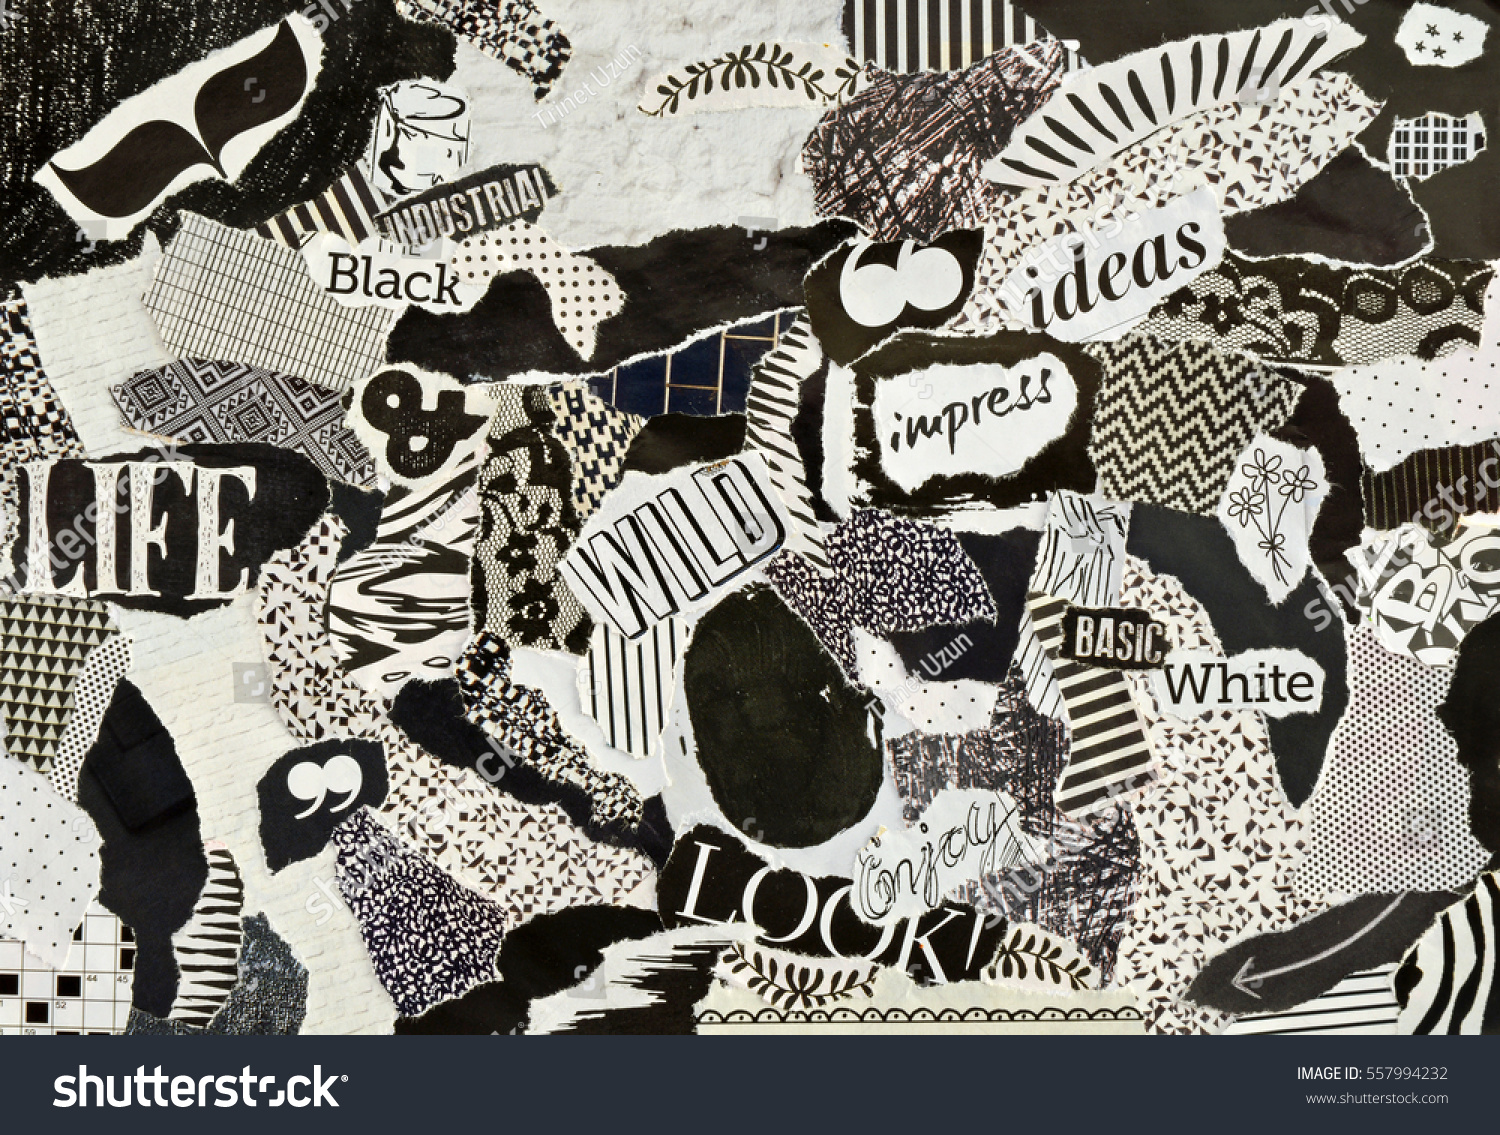 Creative atmosphere art mood board collage stock photo for Color collage ideas